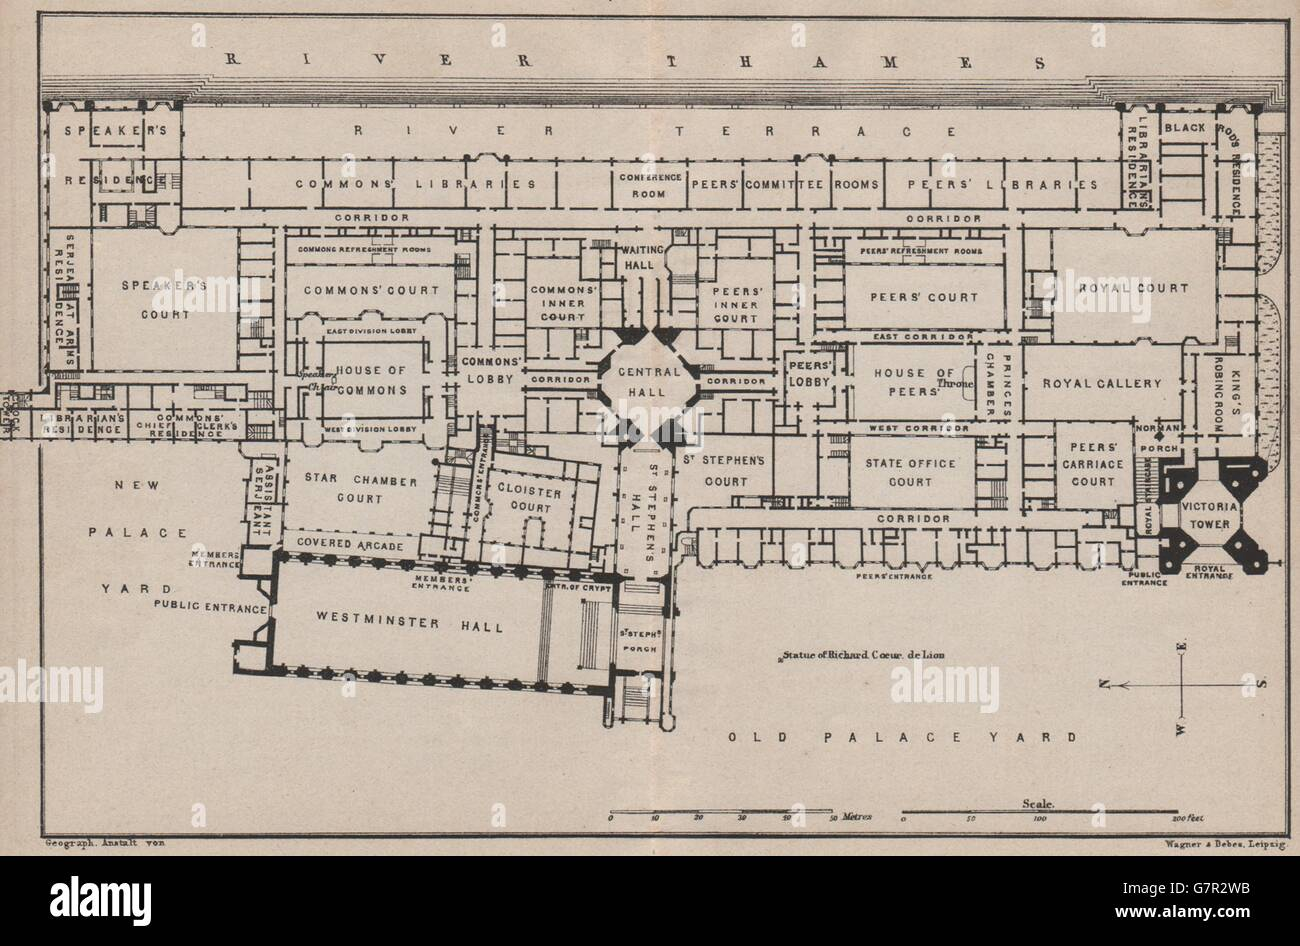 Houses of parliament floor plan palace of westminster london 1905 old map